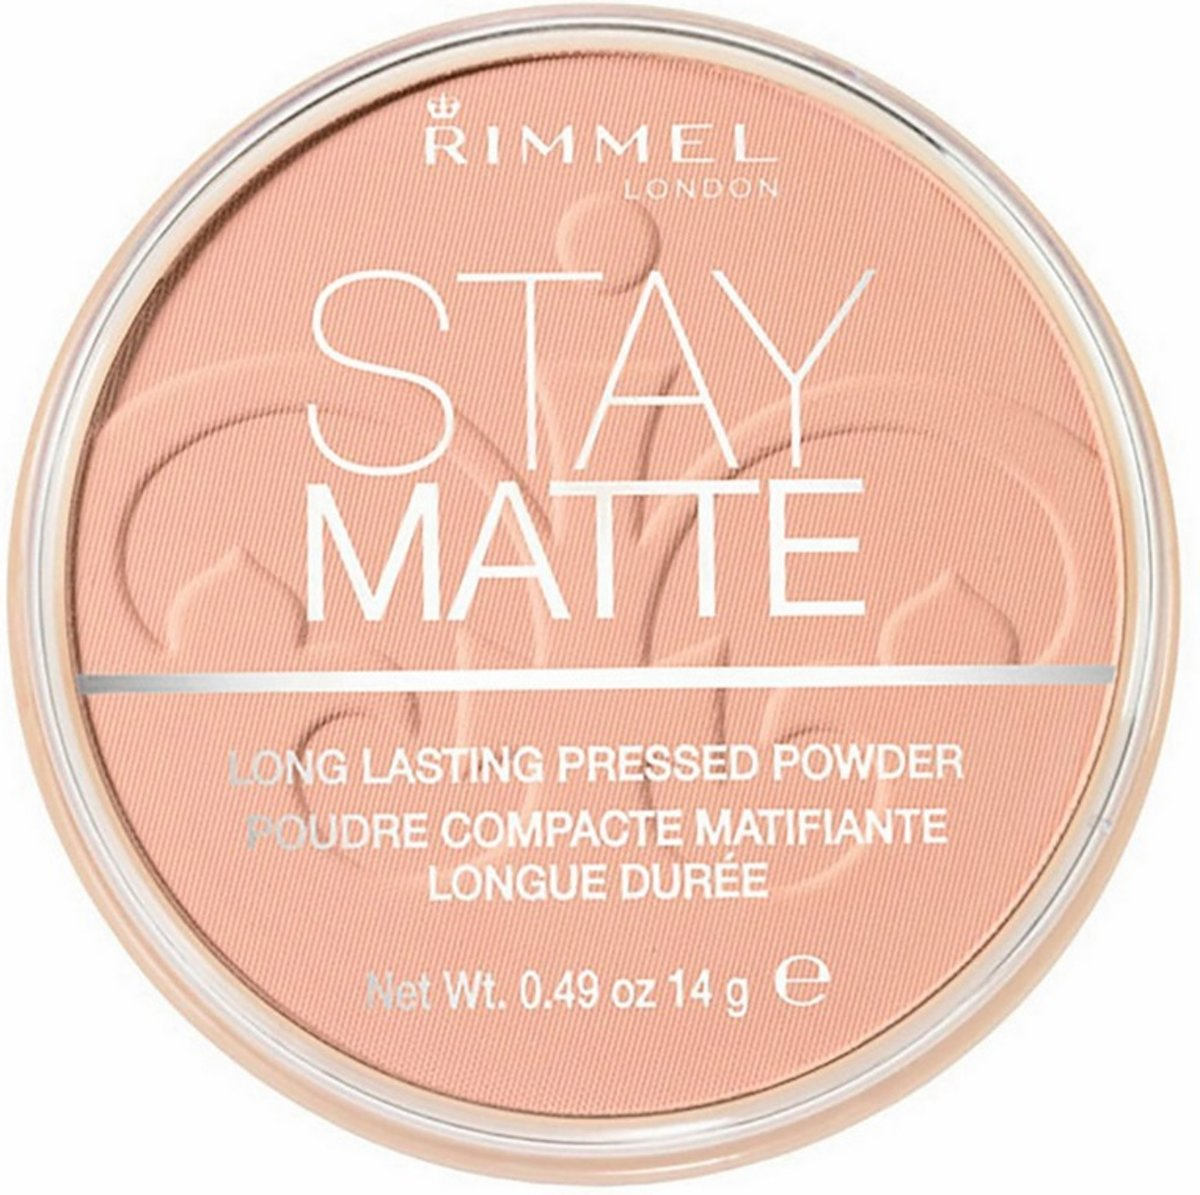 Rimmel London Stay Matte Pressed Poeder - 008 Cashmere